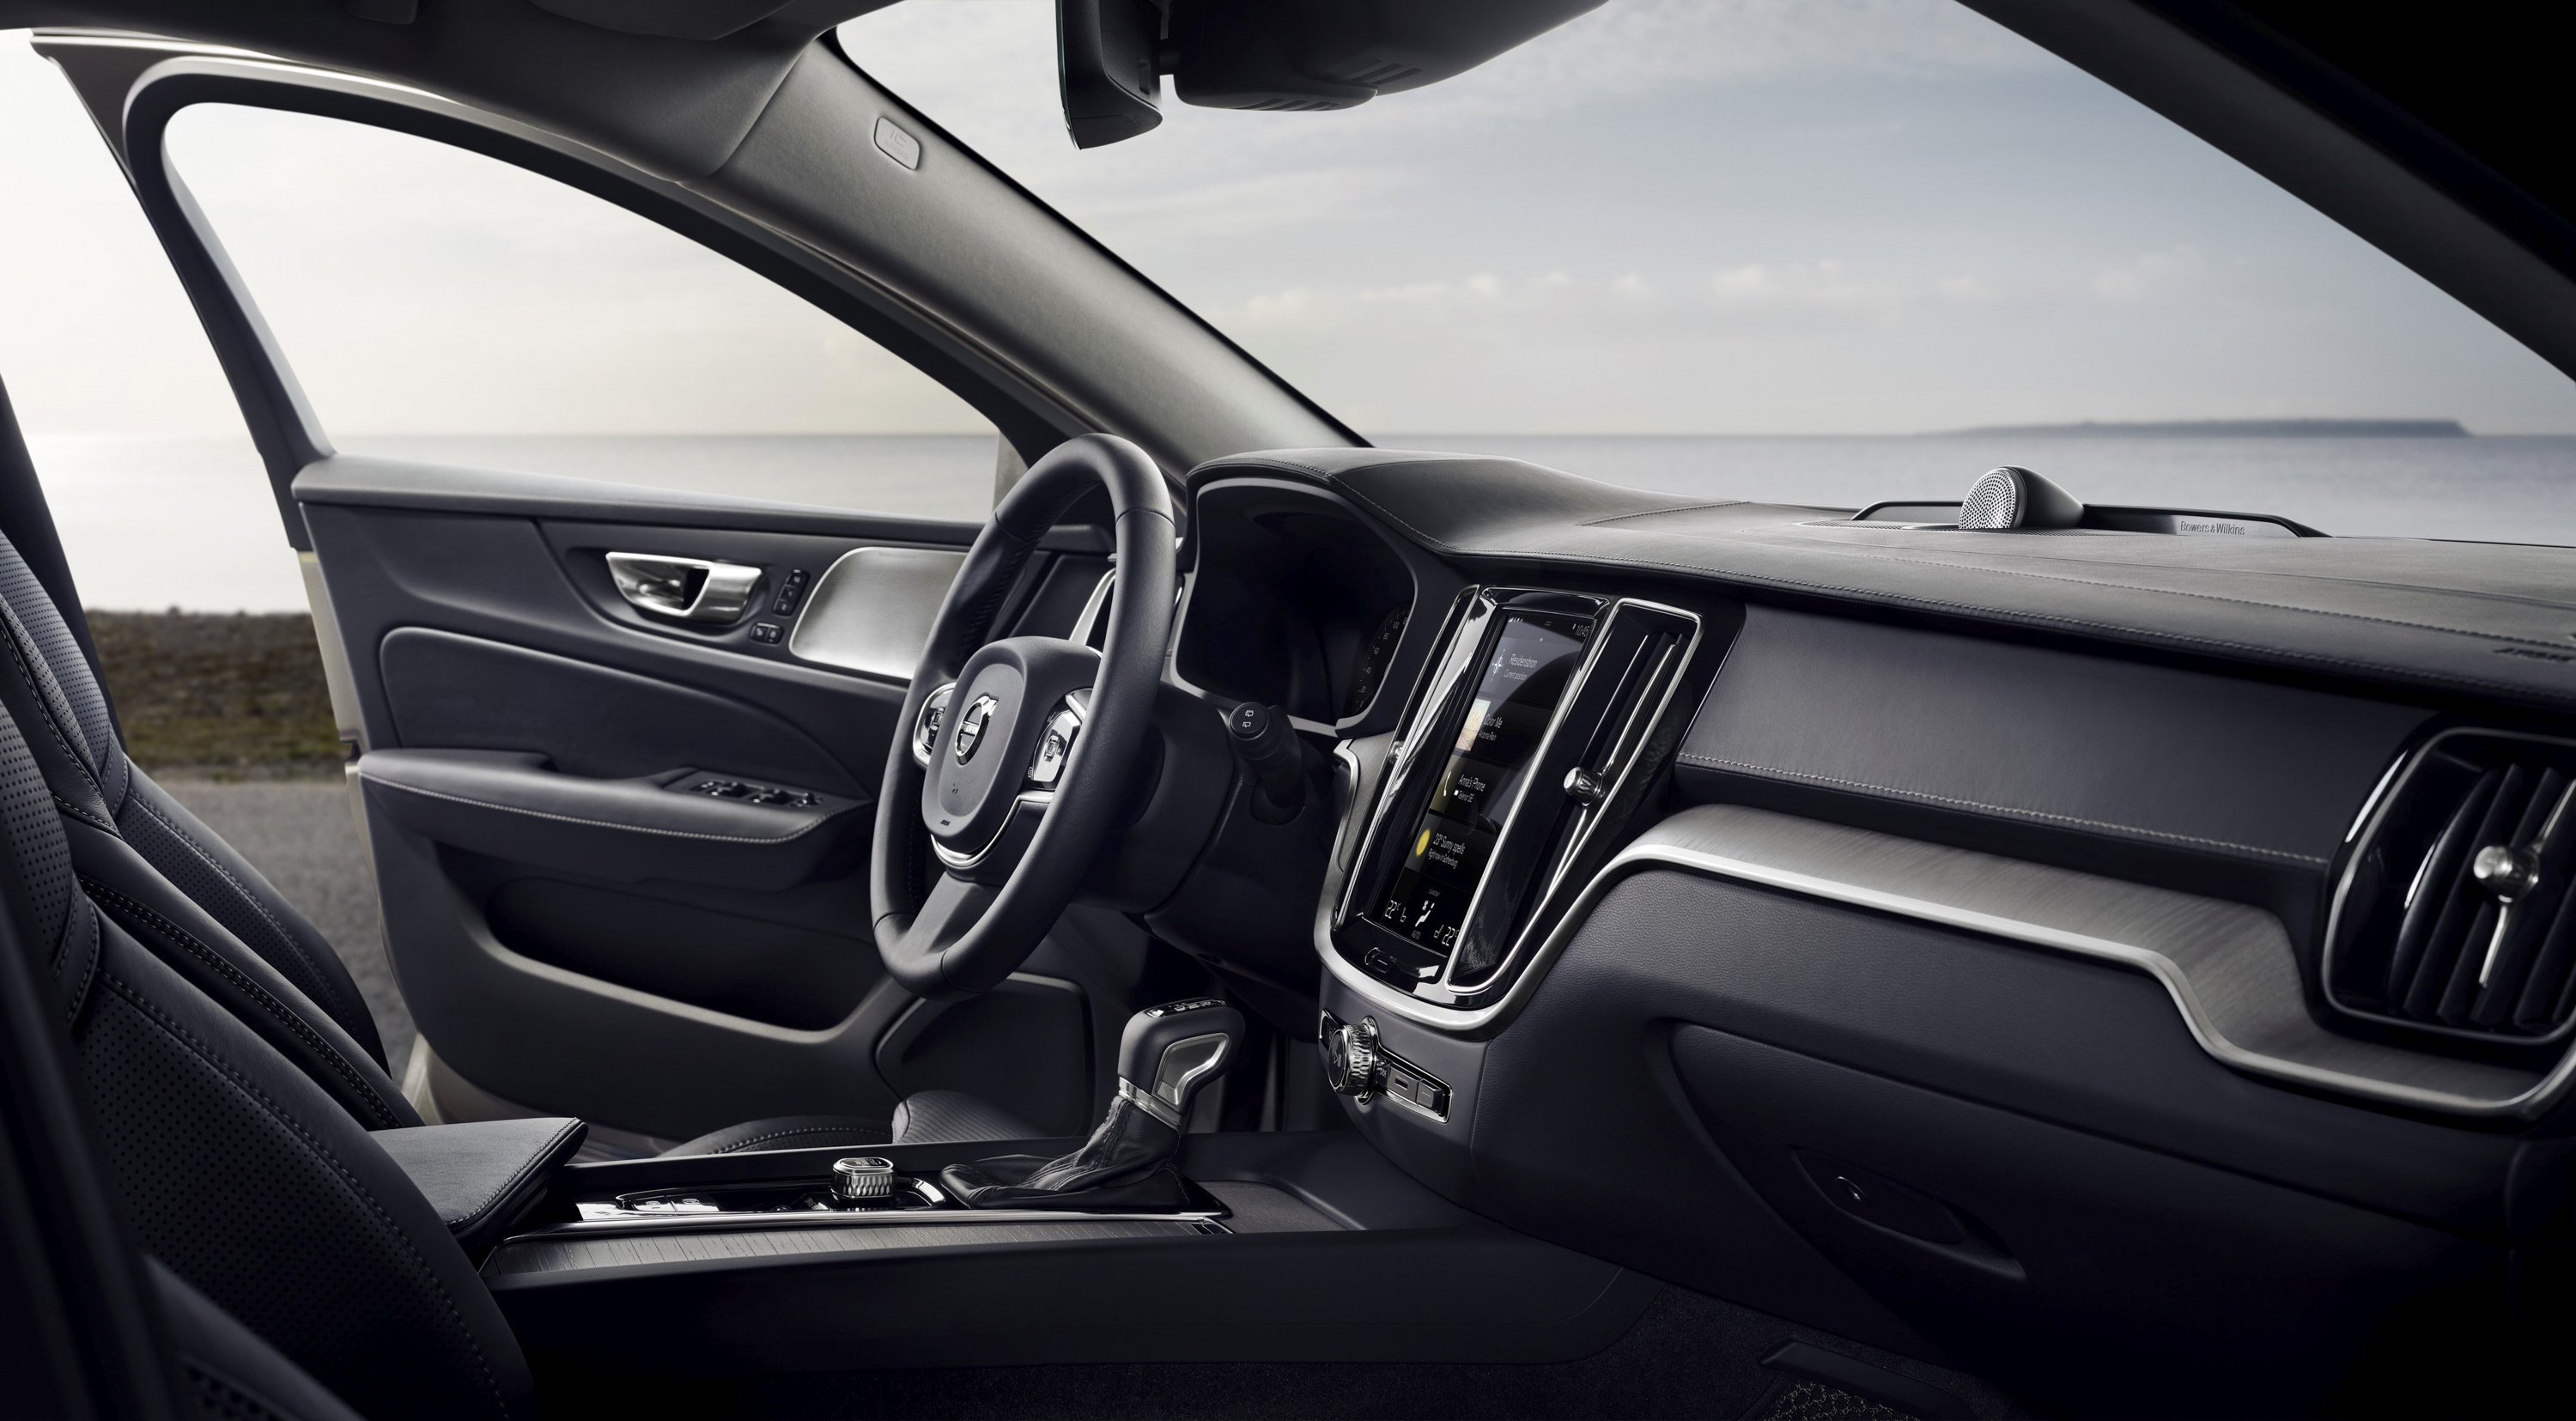 images wallpapers hd photos wallpaper volvo price and other